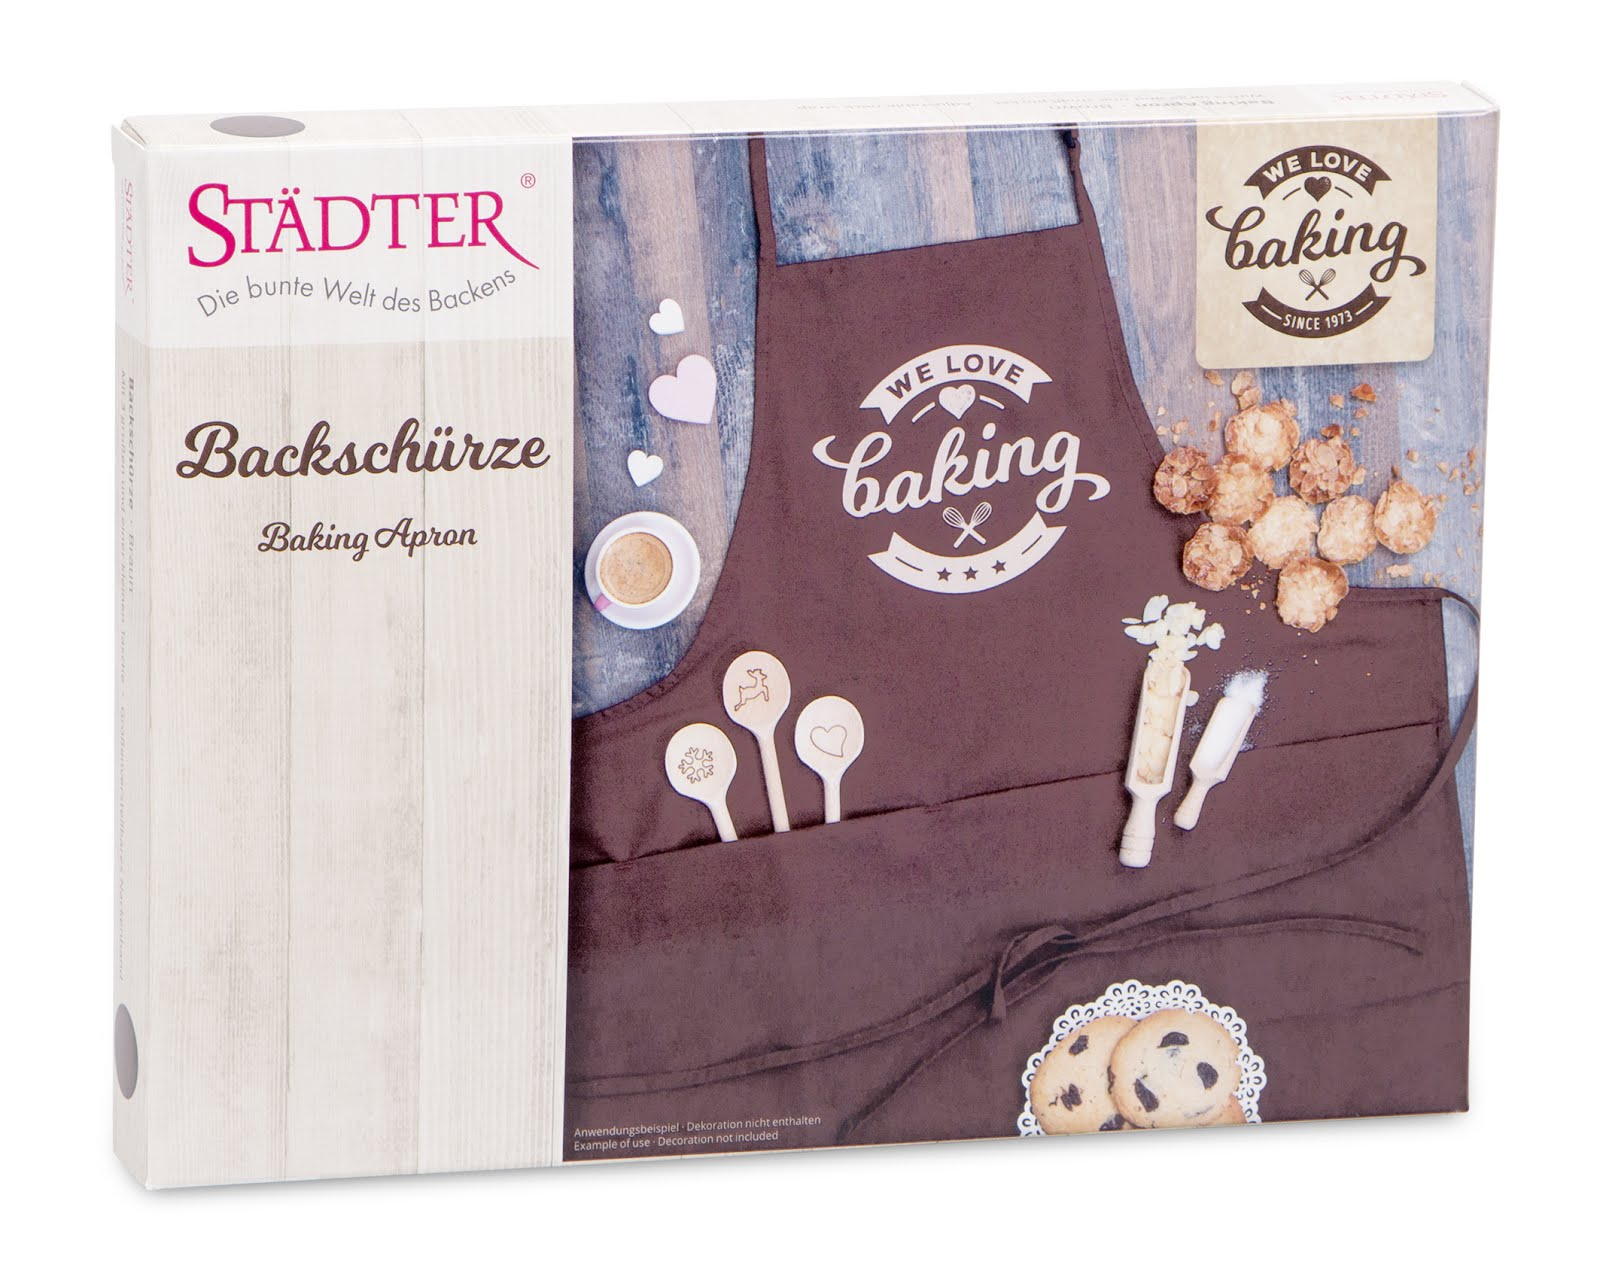 Städter Backschürze We Love Baking